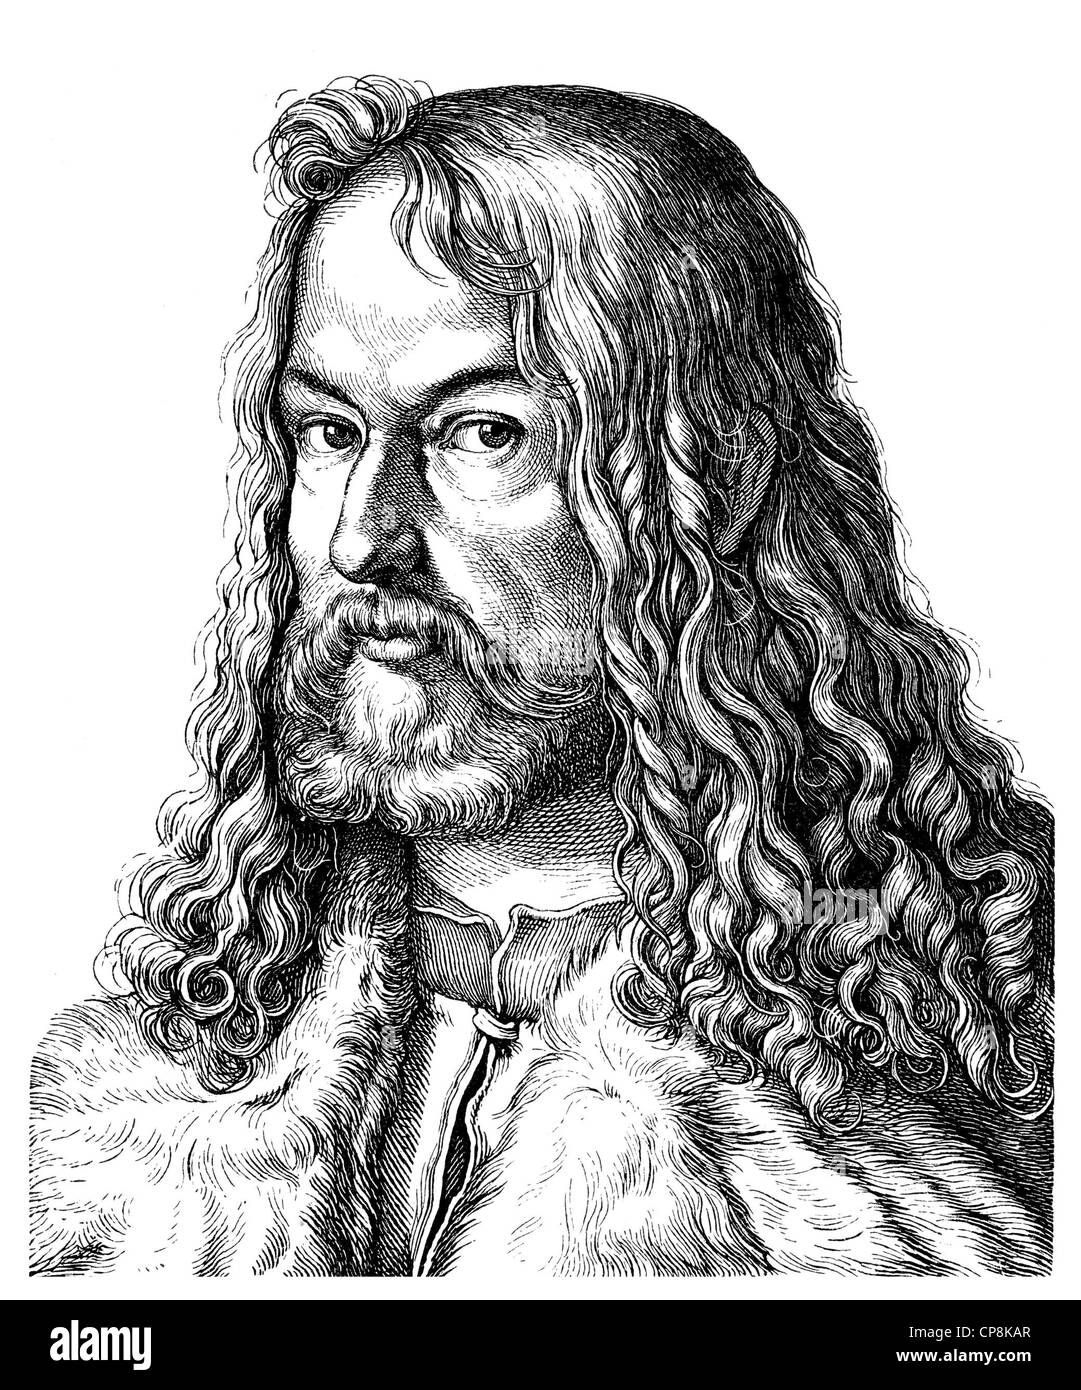 Albrecht Duerer the Younger, 1471 - 1528, a German painter, printmaker, mathematician and theorist at the time of Stock Photo